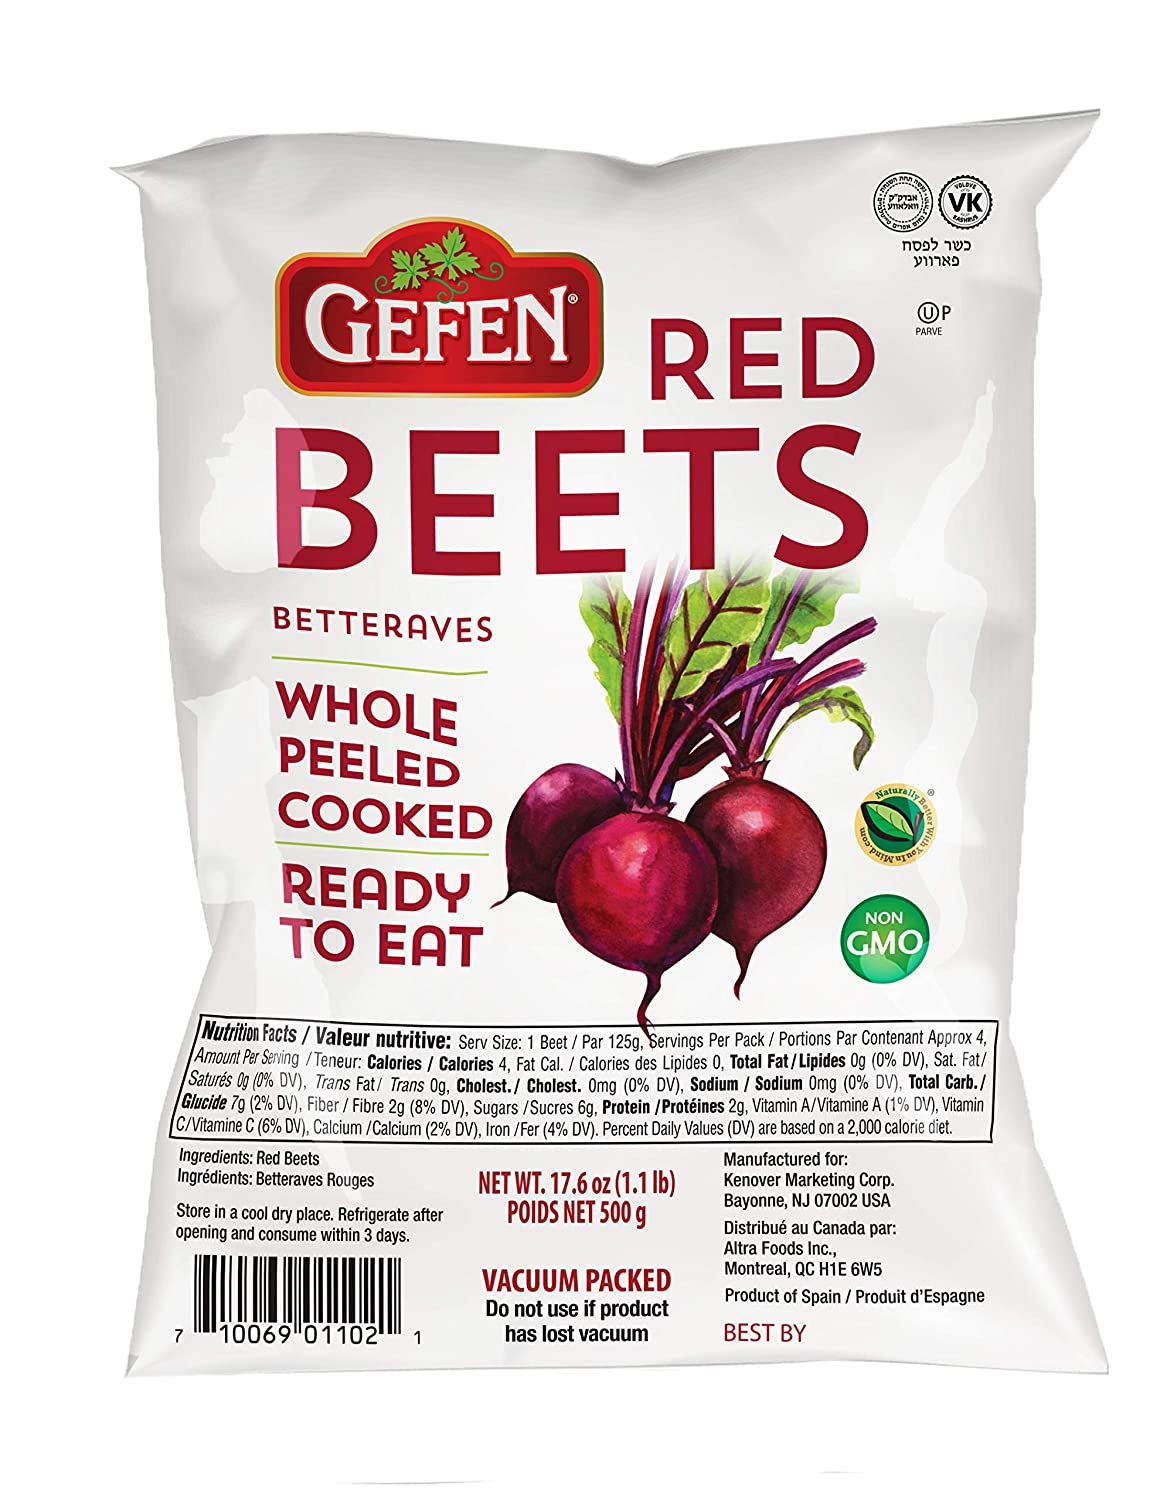 gefen red beets whole peeled cooked ready to eat vacuum packed